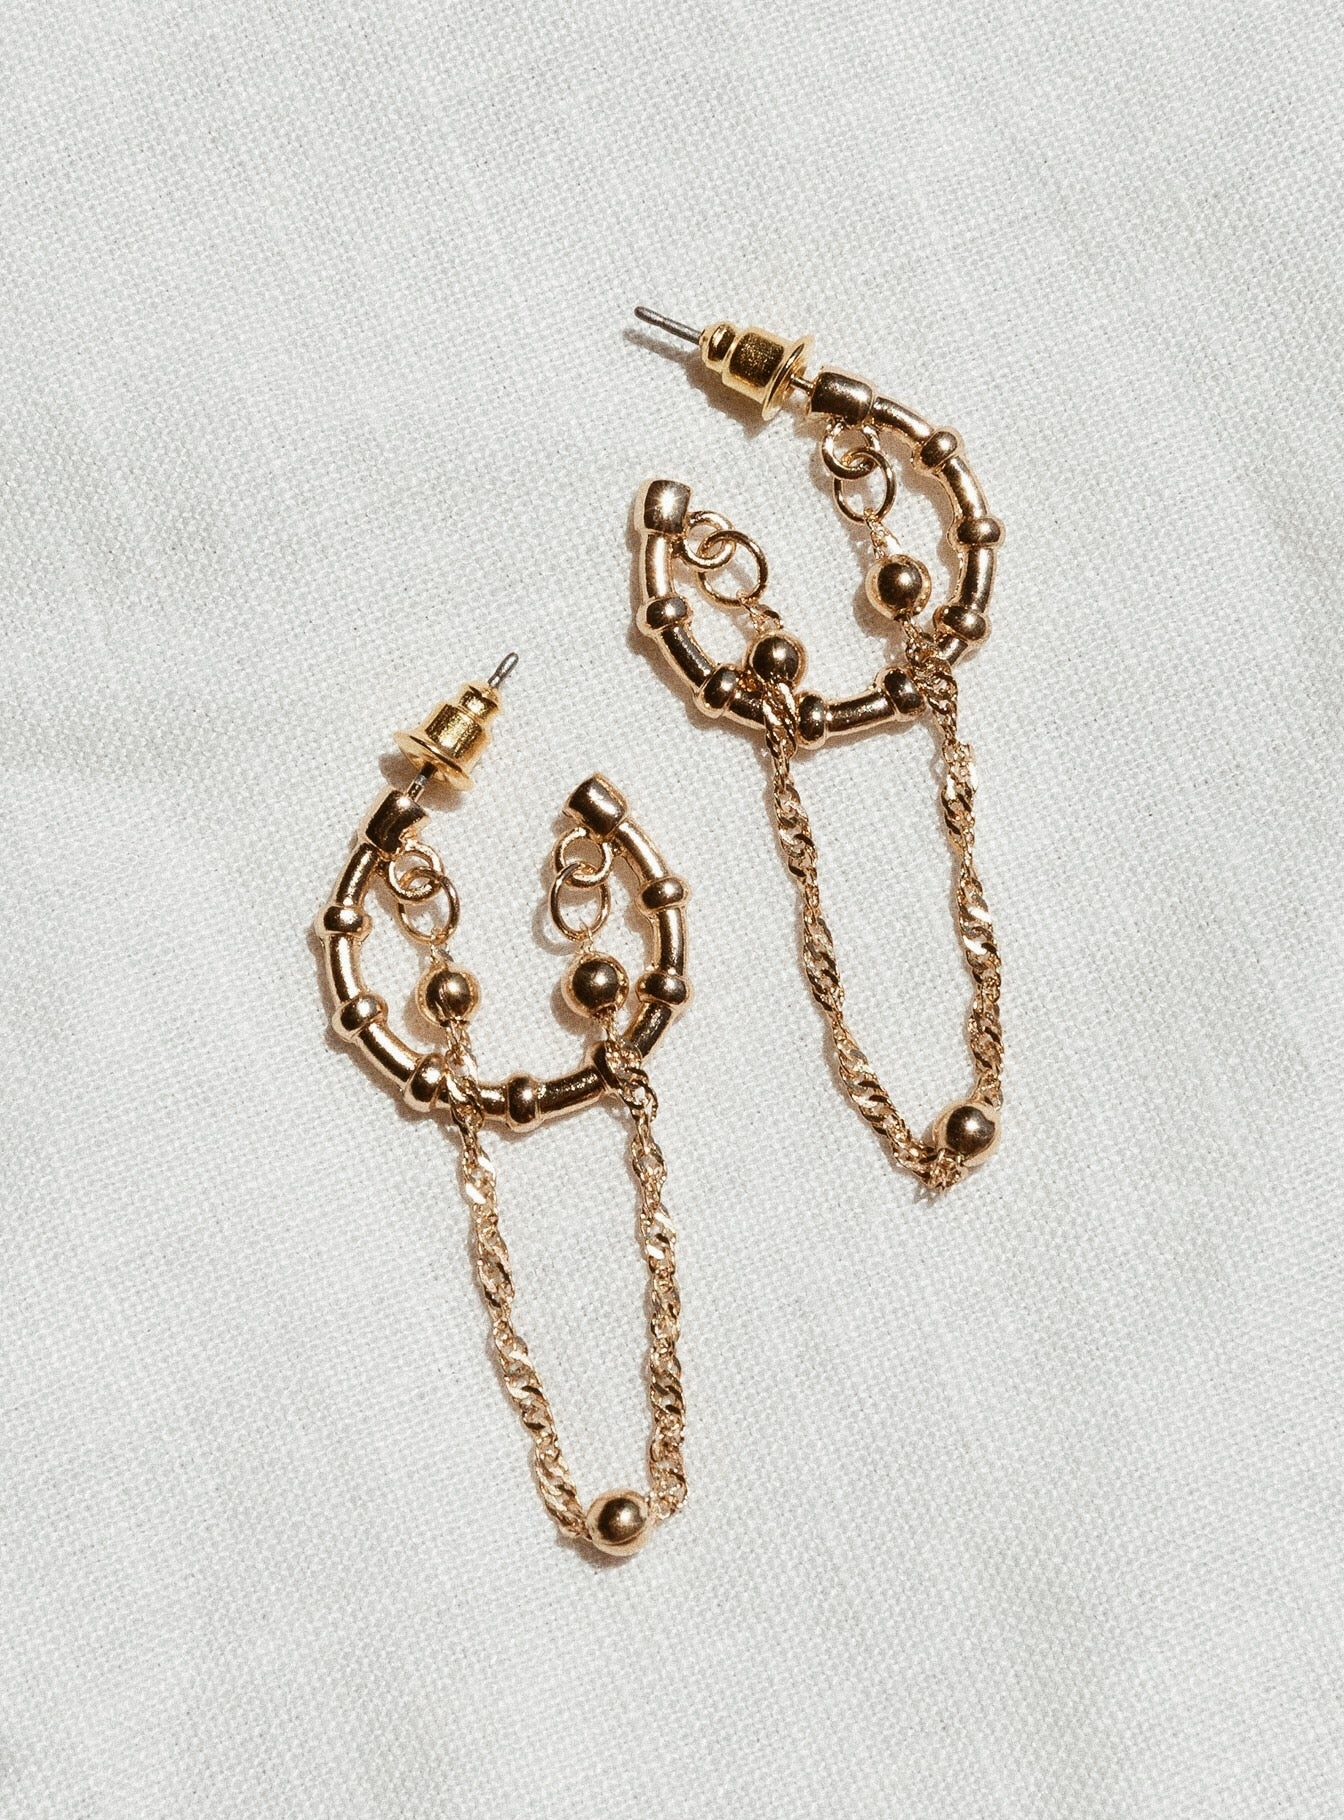 Minc Collections Sunlight Hoops Gold